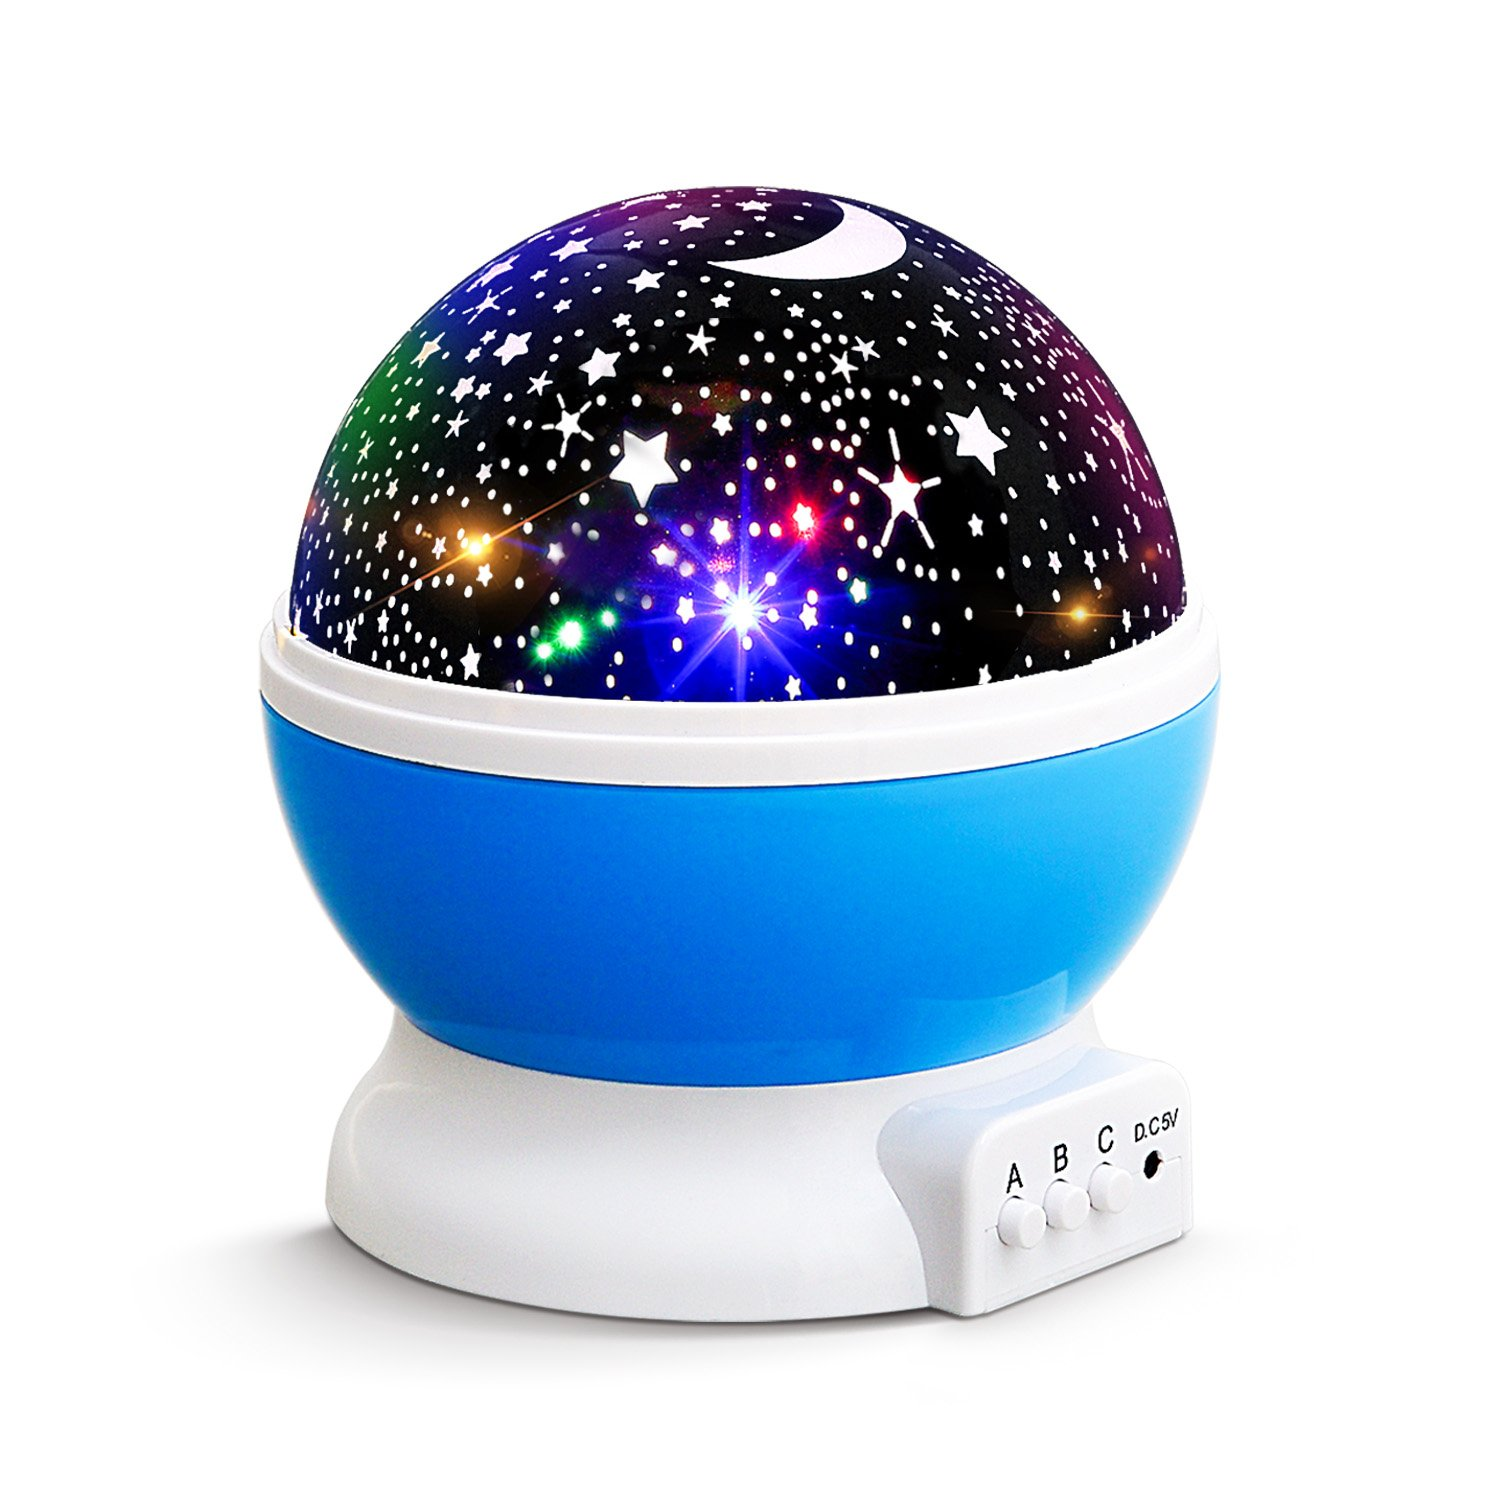 NEW GENERATION Baby Night Lights for kids, Lizber Starry Night Light Rotating Moon Stars Projector, 9 Color Options Romantic Night Lighting Lamp, USB Cable/Batteries Powered for Nursery, Bedroom by Lizber